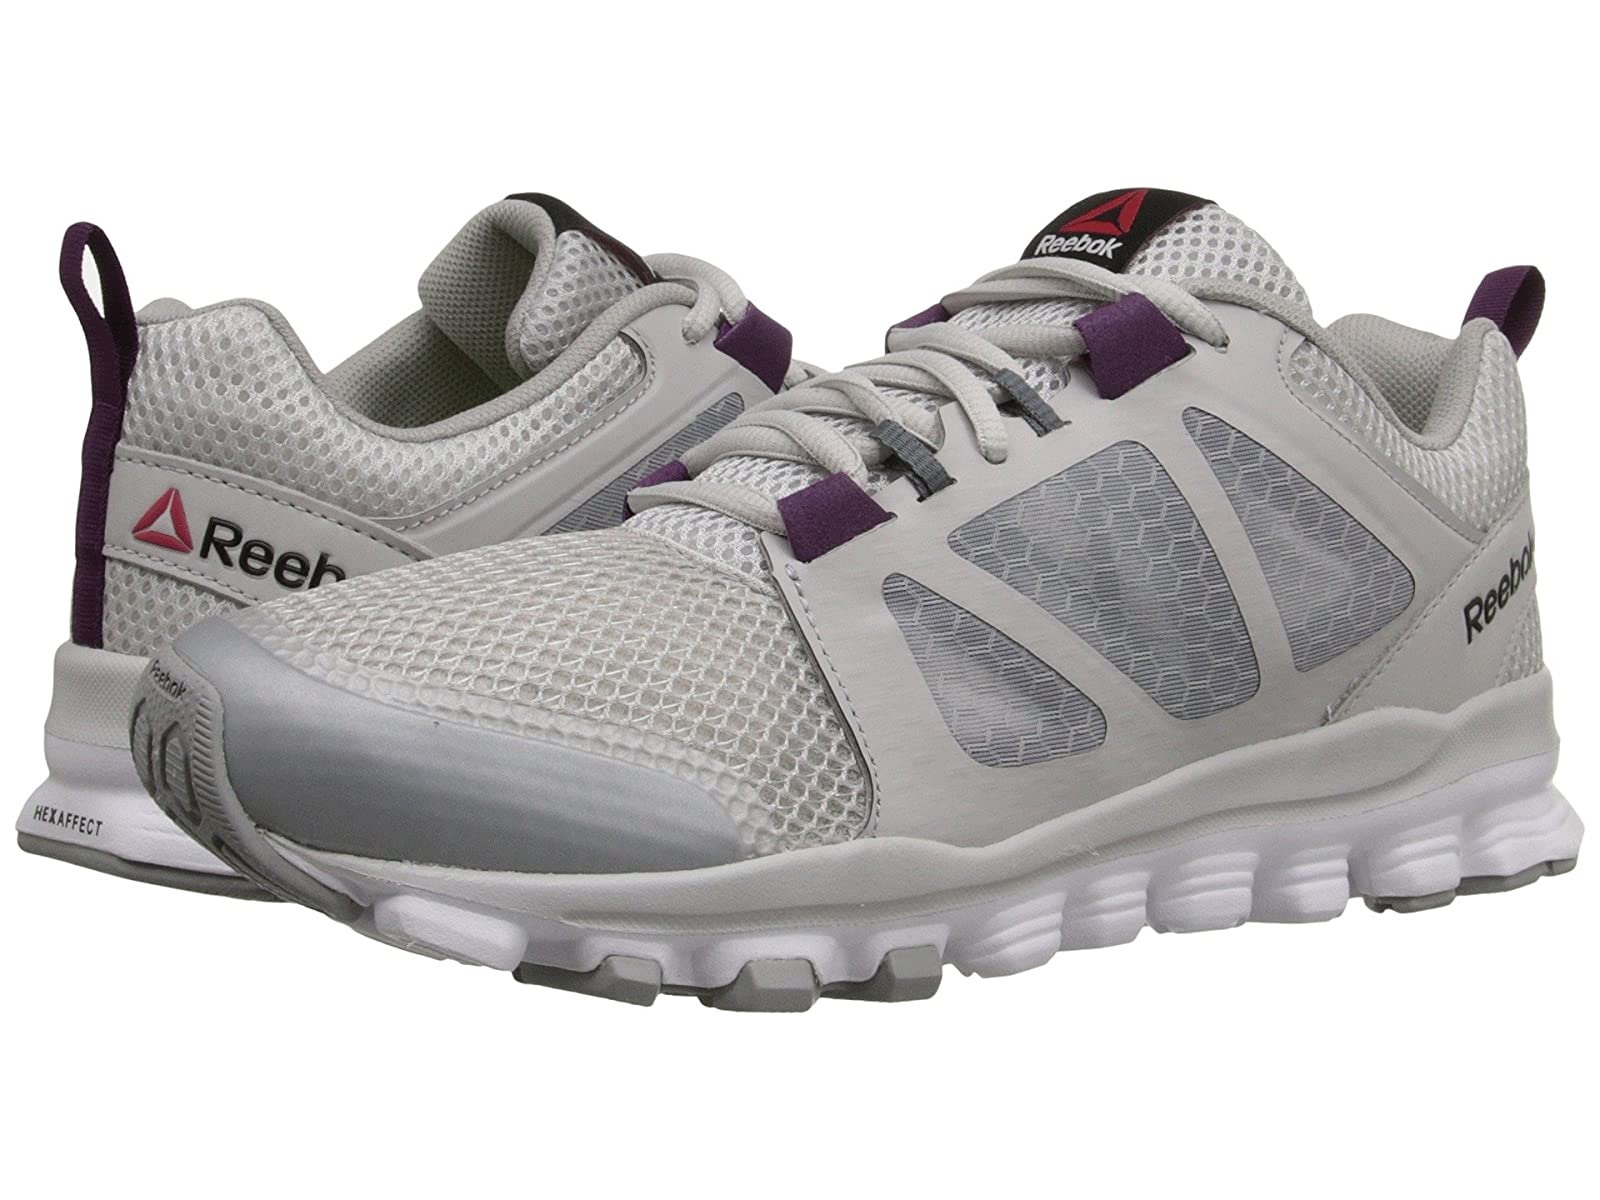 Reebok Hexaffect Run 3.0 MTMCheap and distinctive eye-catching shoes